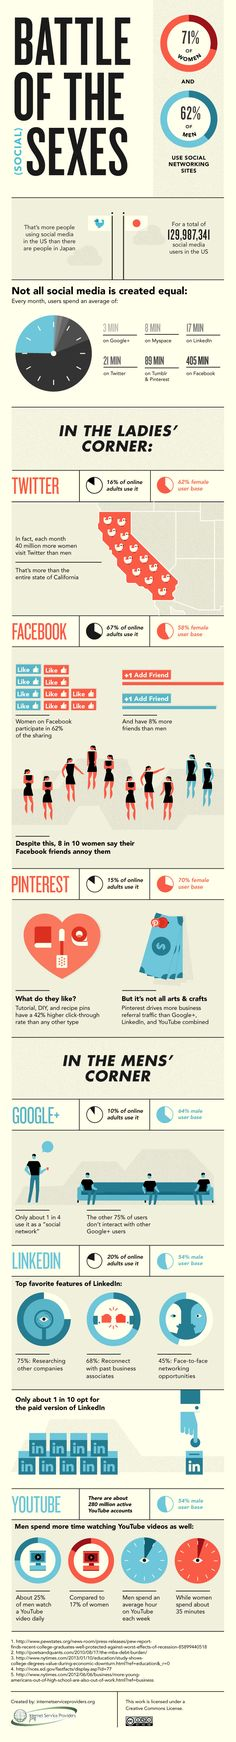 Men vs. Women on #socialmedia #infographic